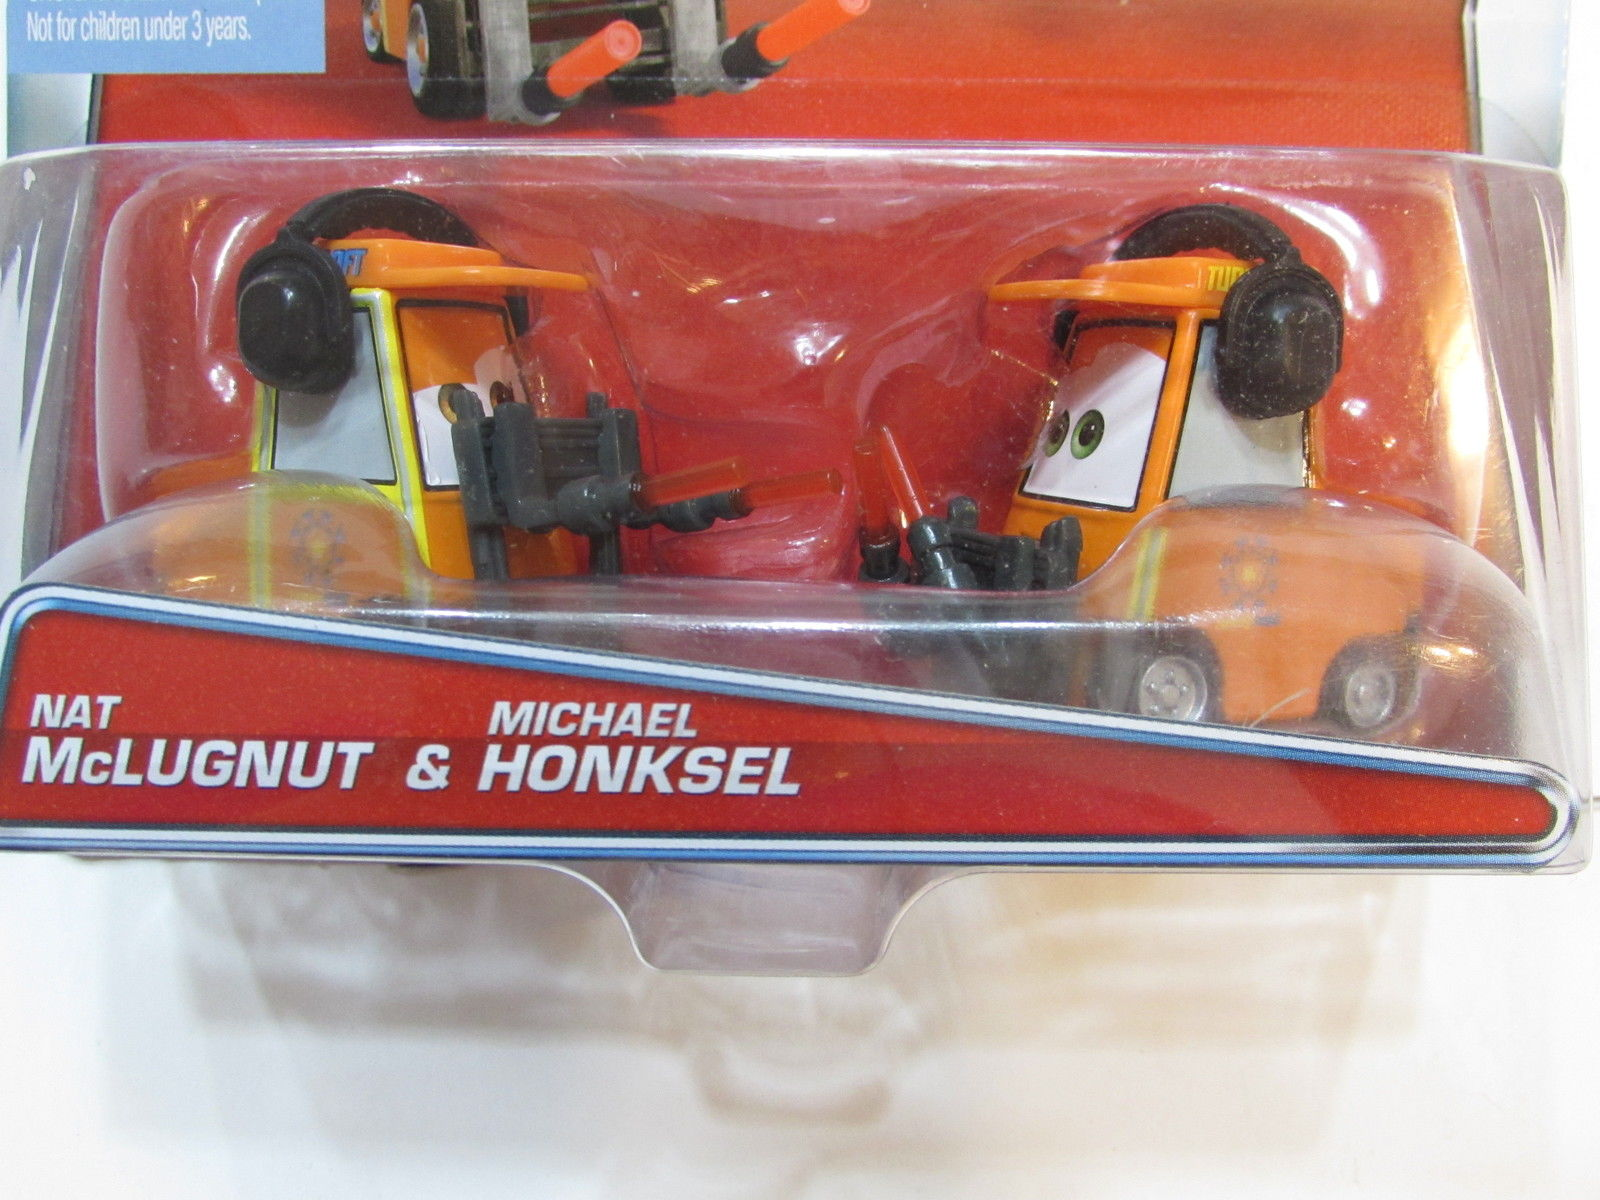 DISNEY PIXAR CARS AIRPORT ADVENTURE NAT McLUGNUT & MICHAEL HONKSEL